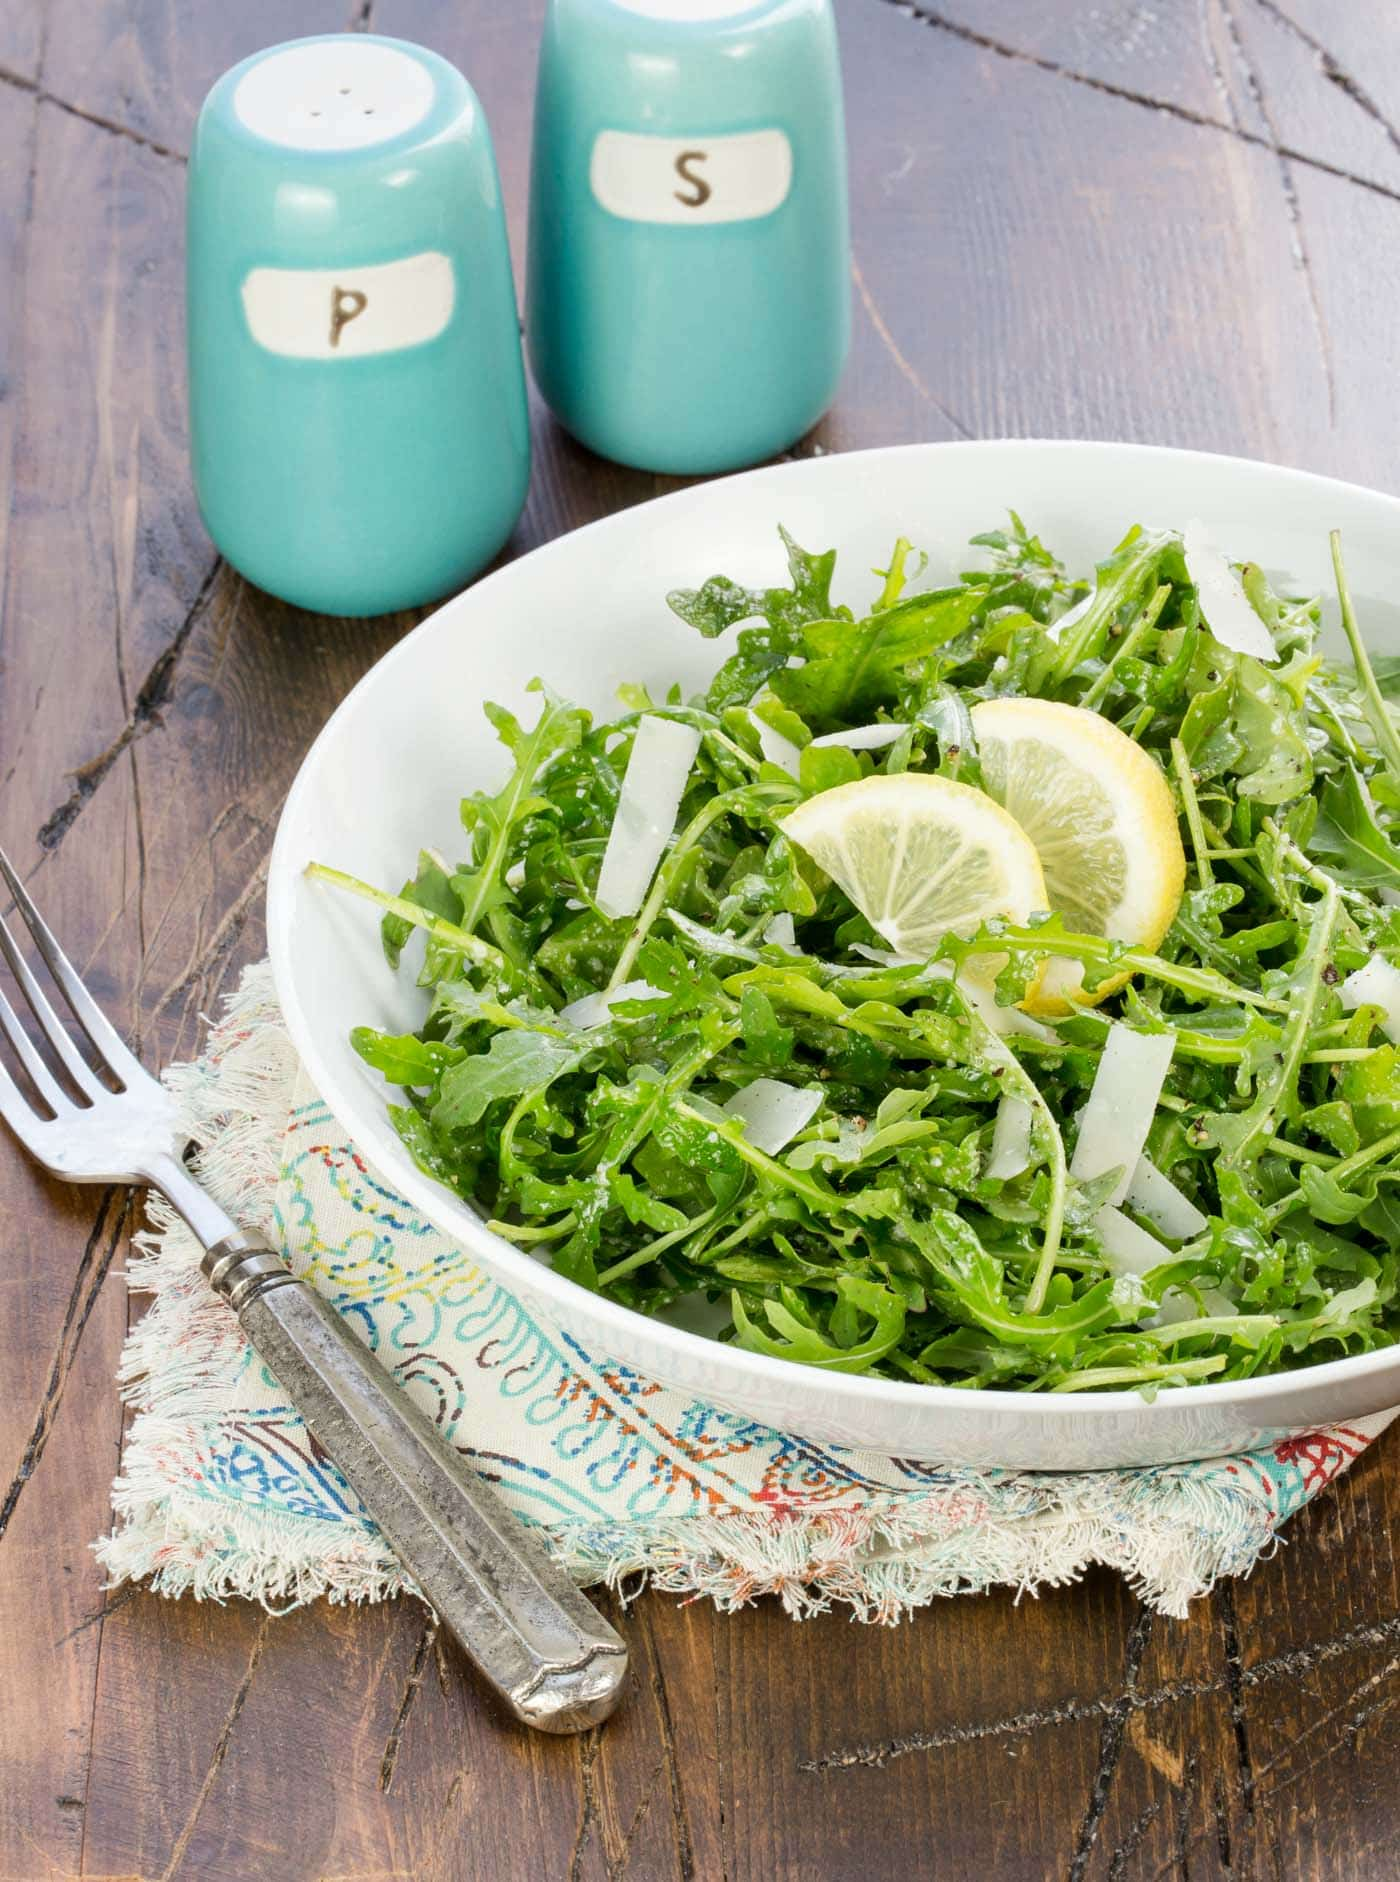 This Arugula Salad with Lemon Vinaigrette always disappears!